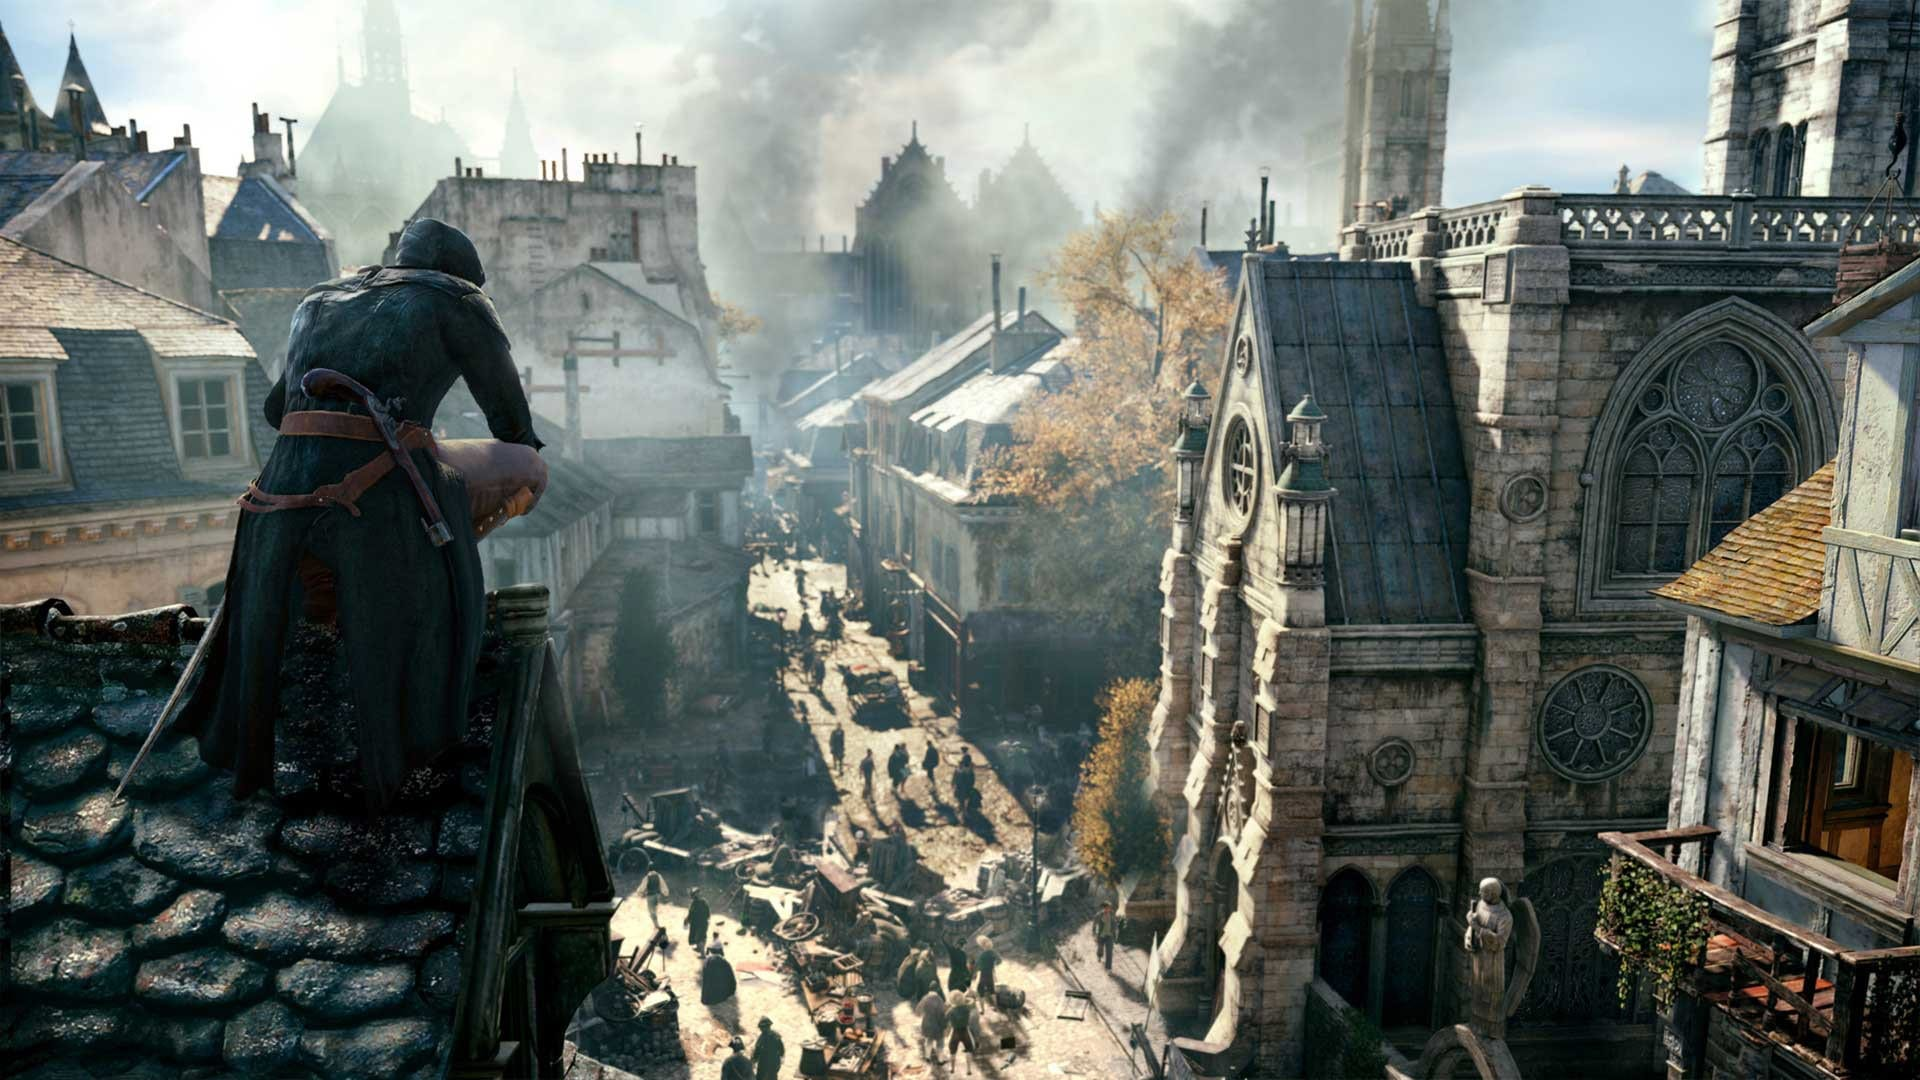 In Defense: Assassin's Creed Unity